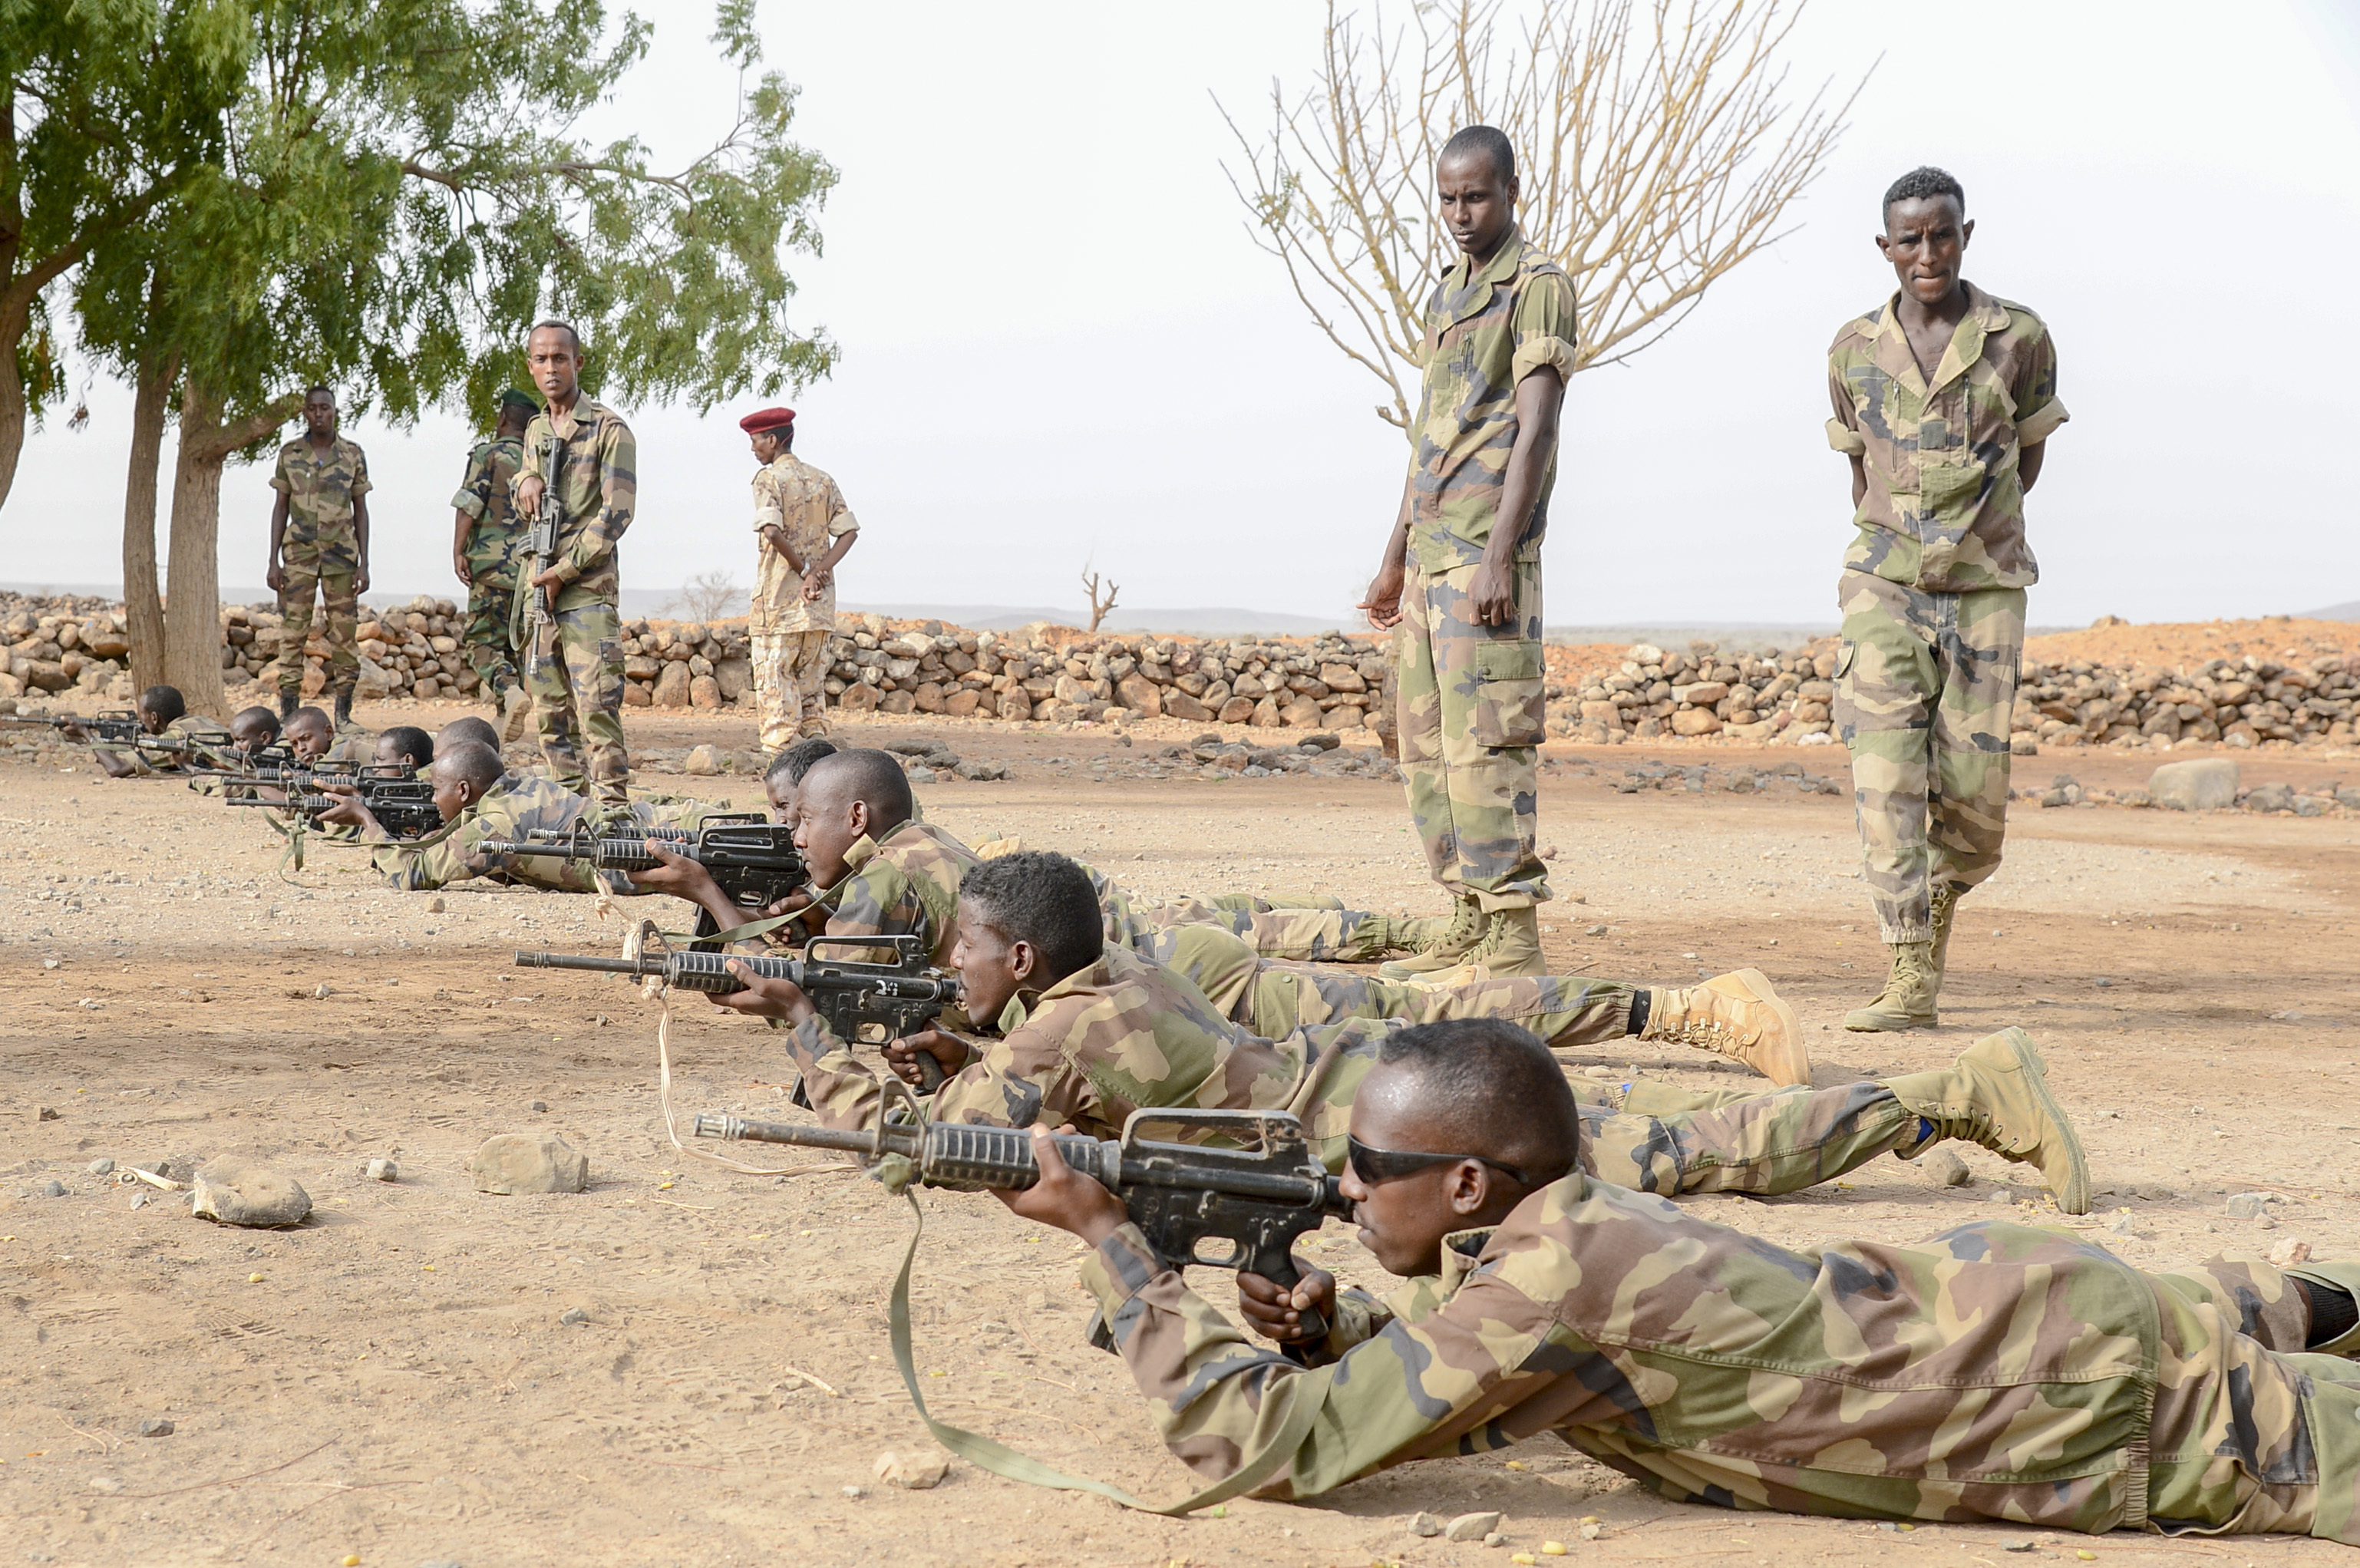 Non-commissioned officers with the Djiboutian Army's Rapid Intervention Battalion (RIB) instruct new recruits at a training site outside Djibouti City, July 3, 2018. The RIB is a U.S. Army trained unit that was formed to respond to crises and promote regional security and stability in East Africa. (U.S. Navy Photo by Mass Communication Specialist 2nd Class Timothy M. Ahearn)